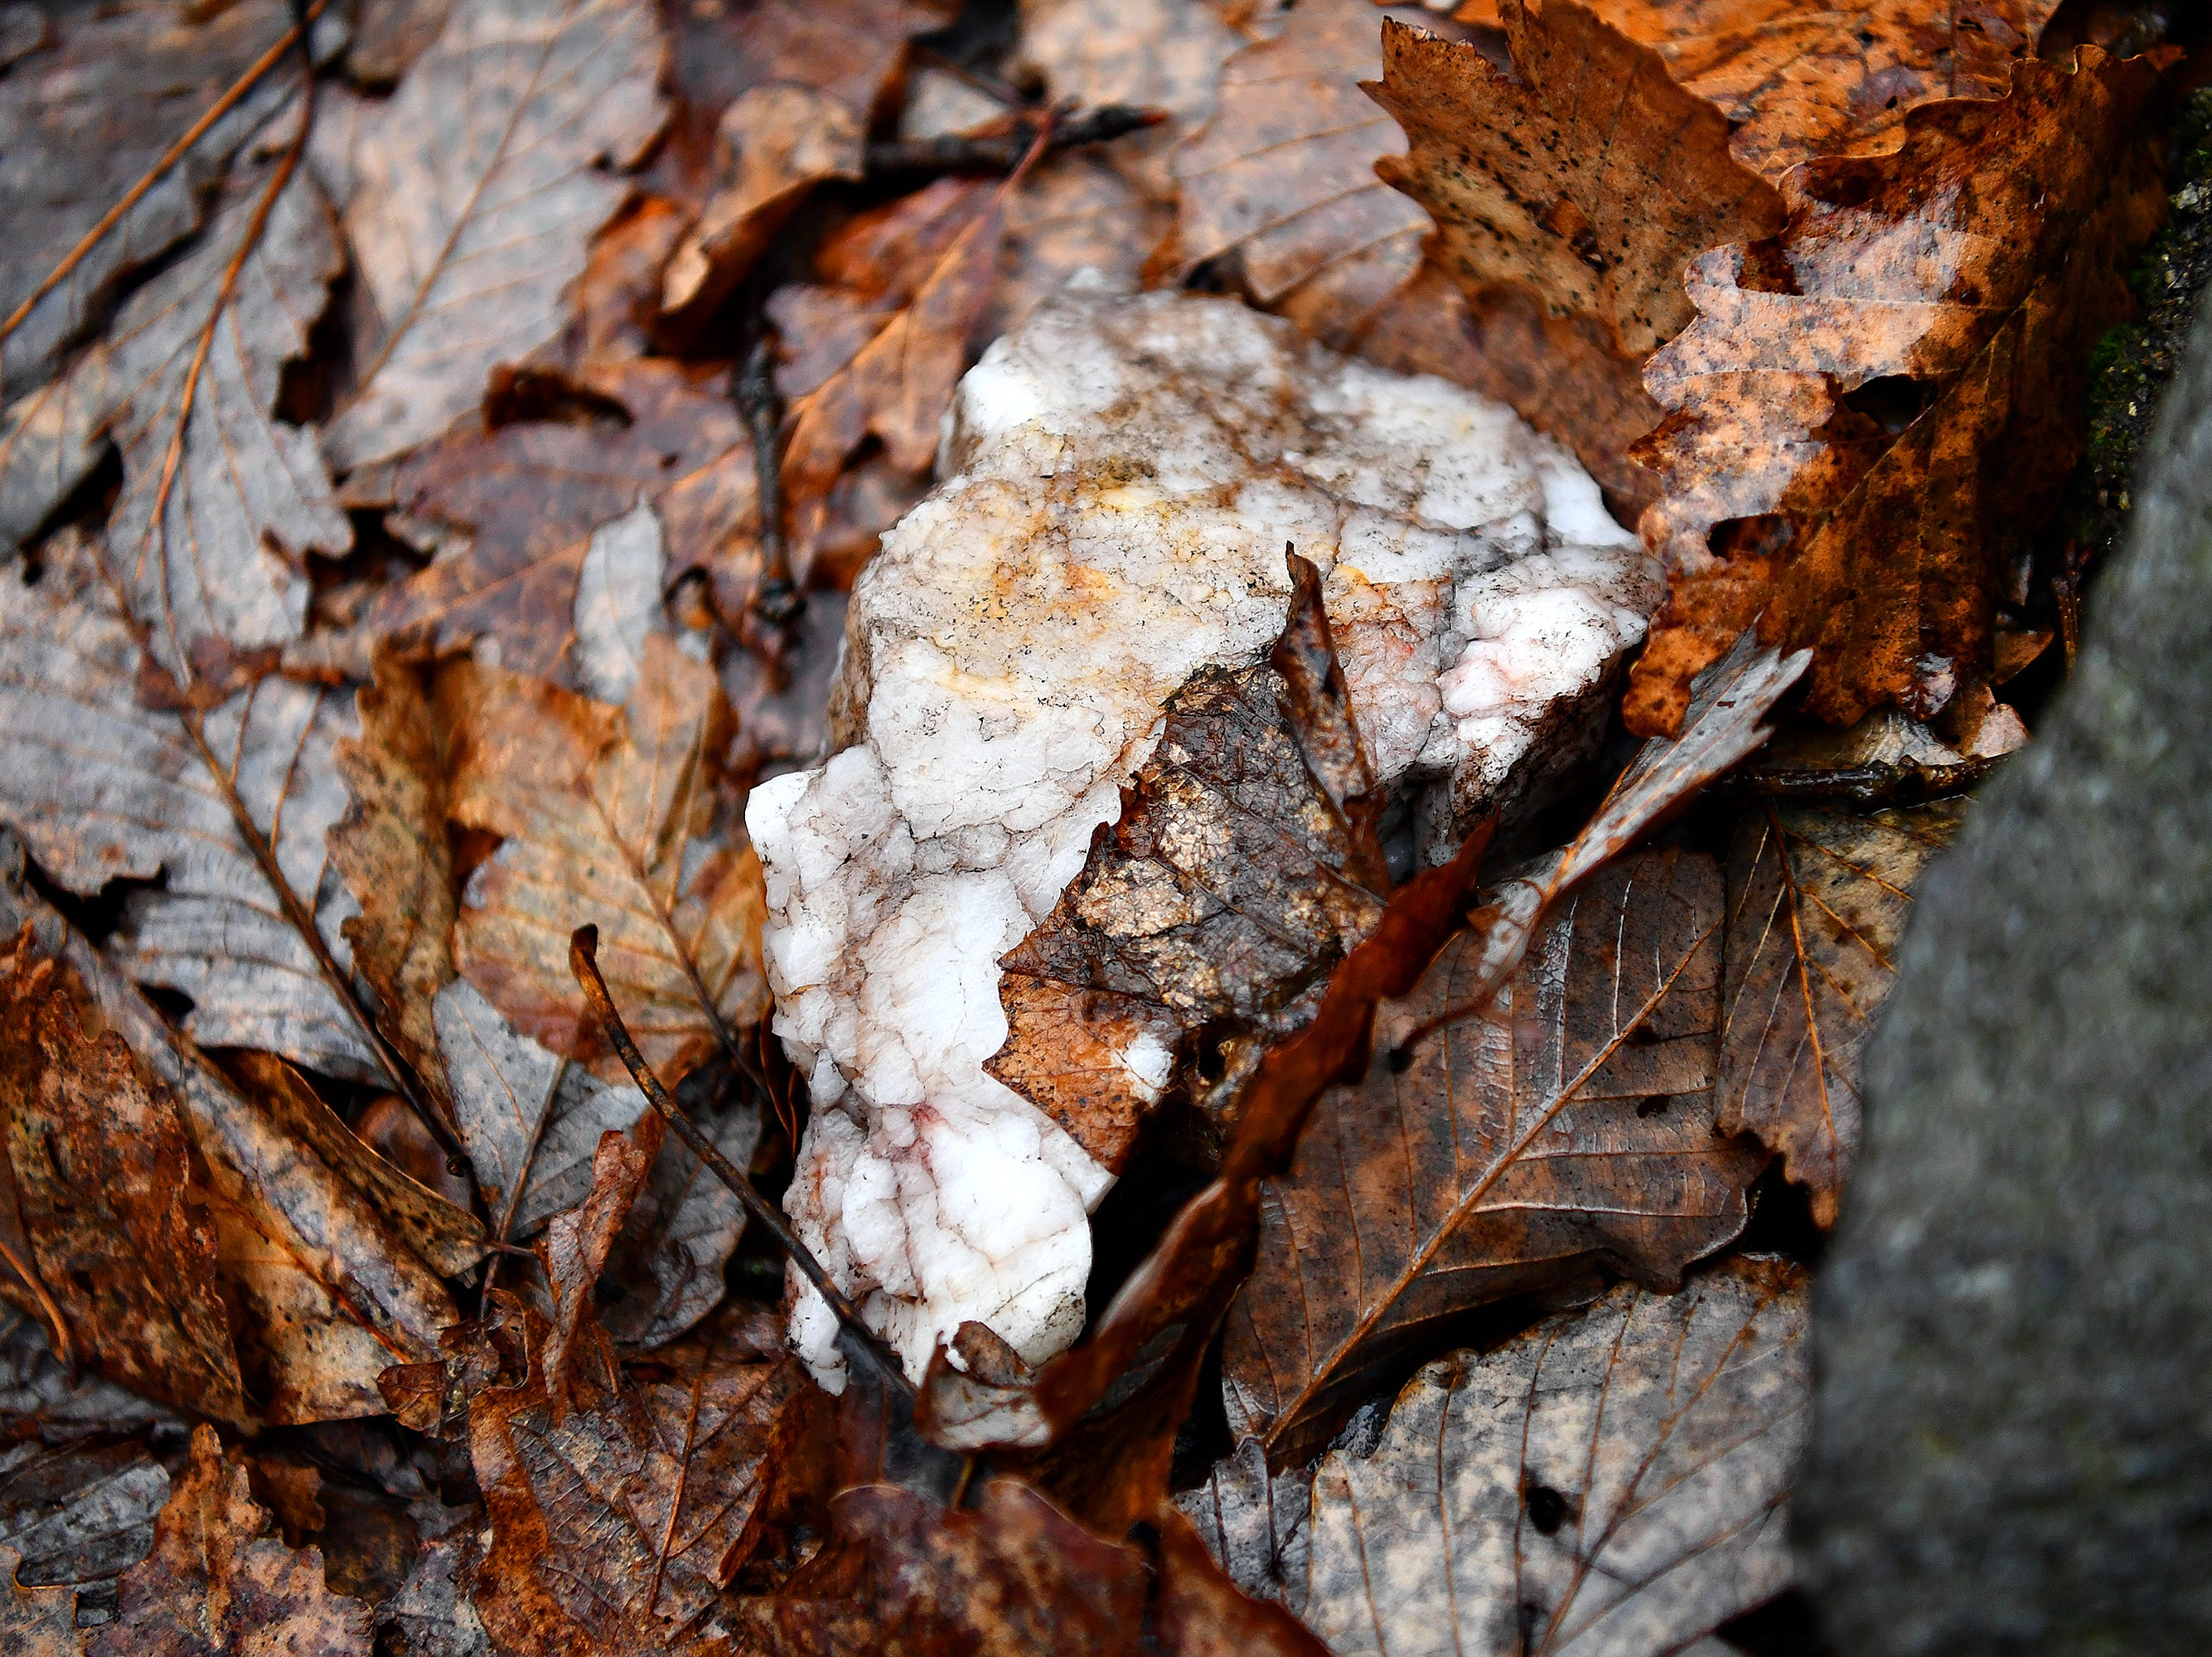 Quartz is seen during a Marshmallow Hike at Rocky Ridge Park in Springettsbury Township, Friday, Dec. 28, 2018. Dawn J. Sagert photo